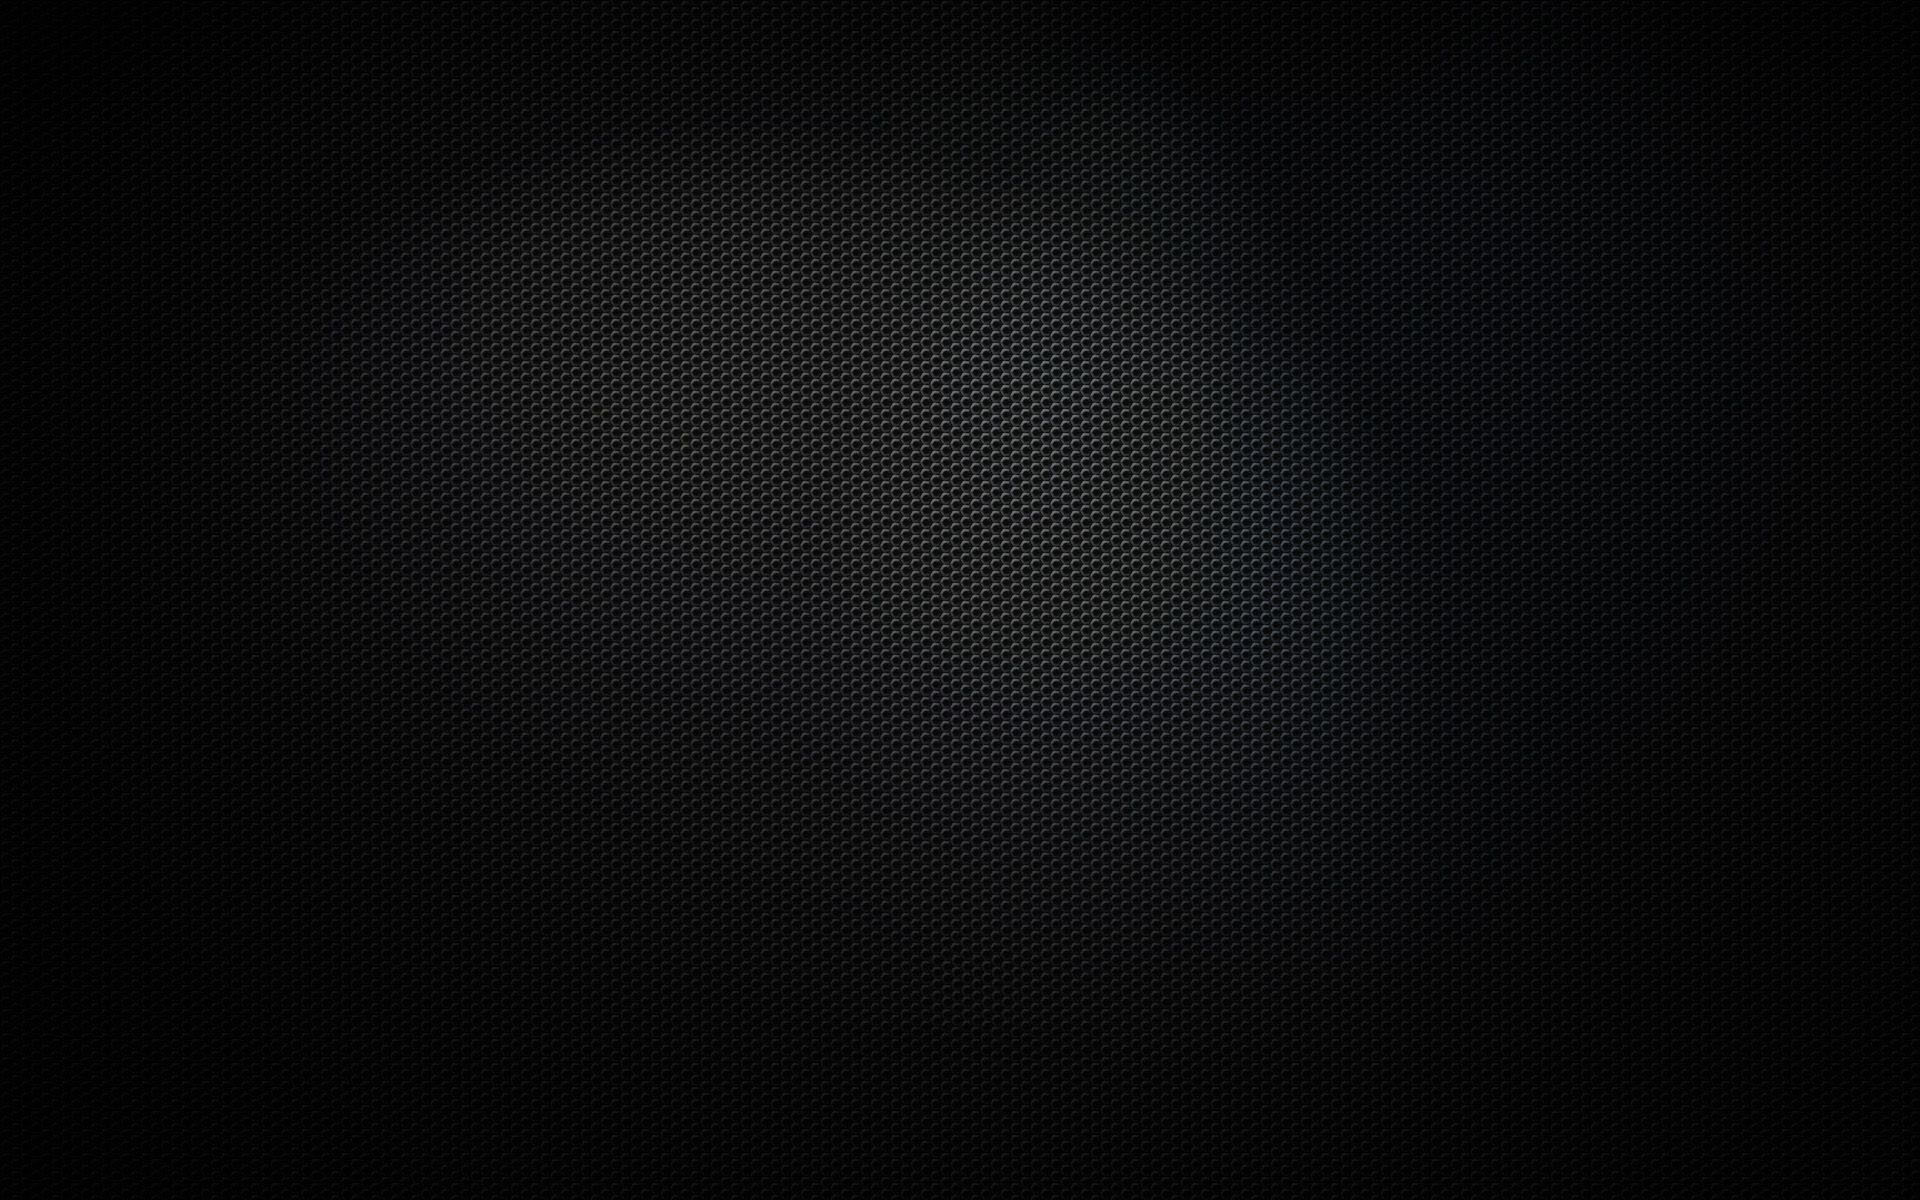 Dark Abstract Wallpapers